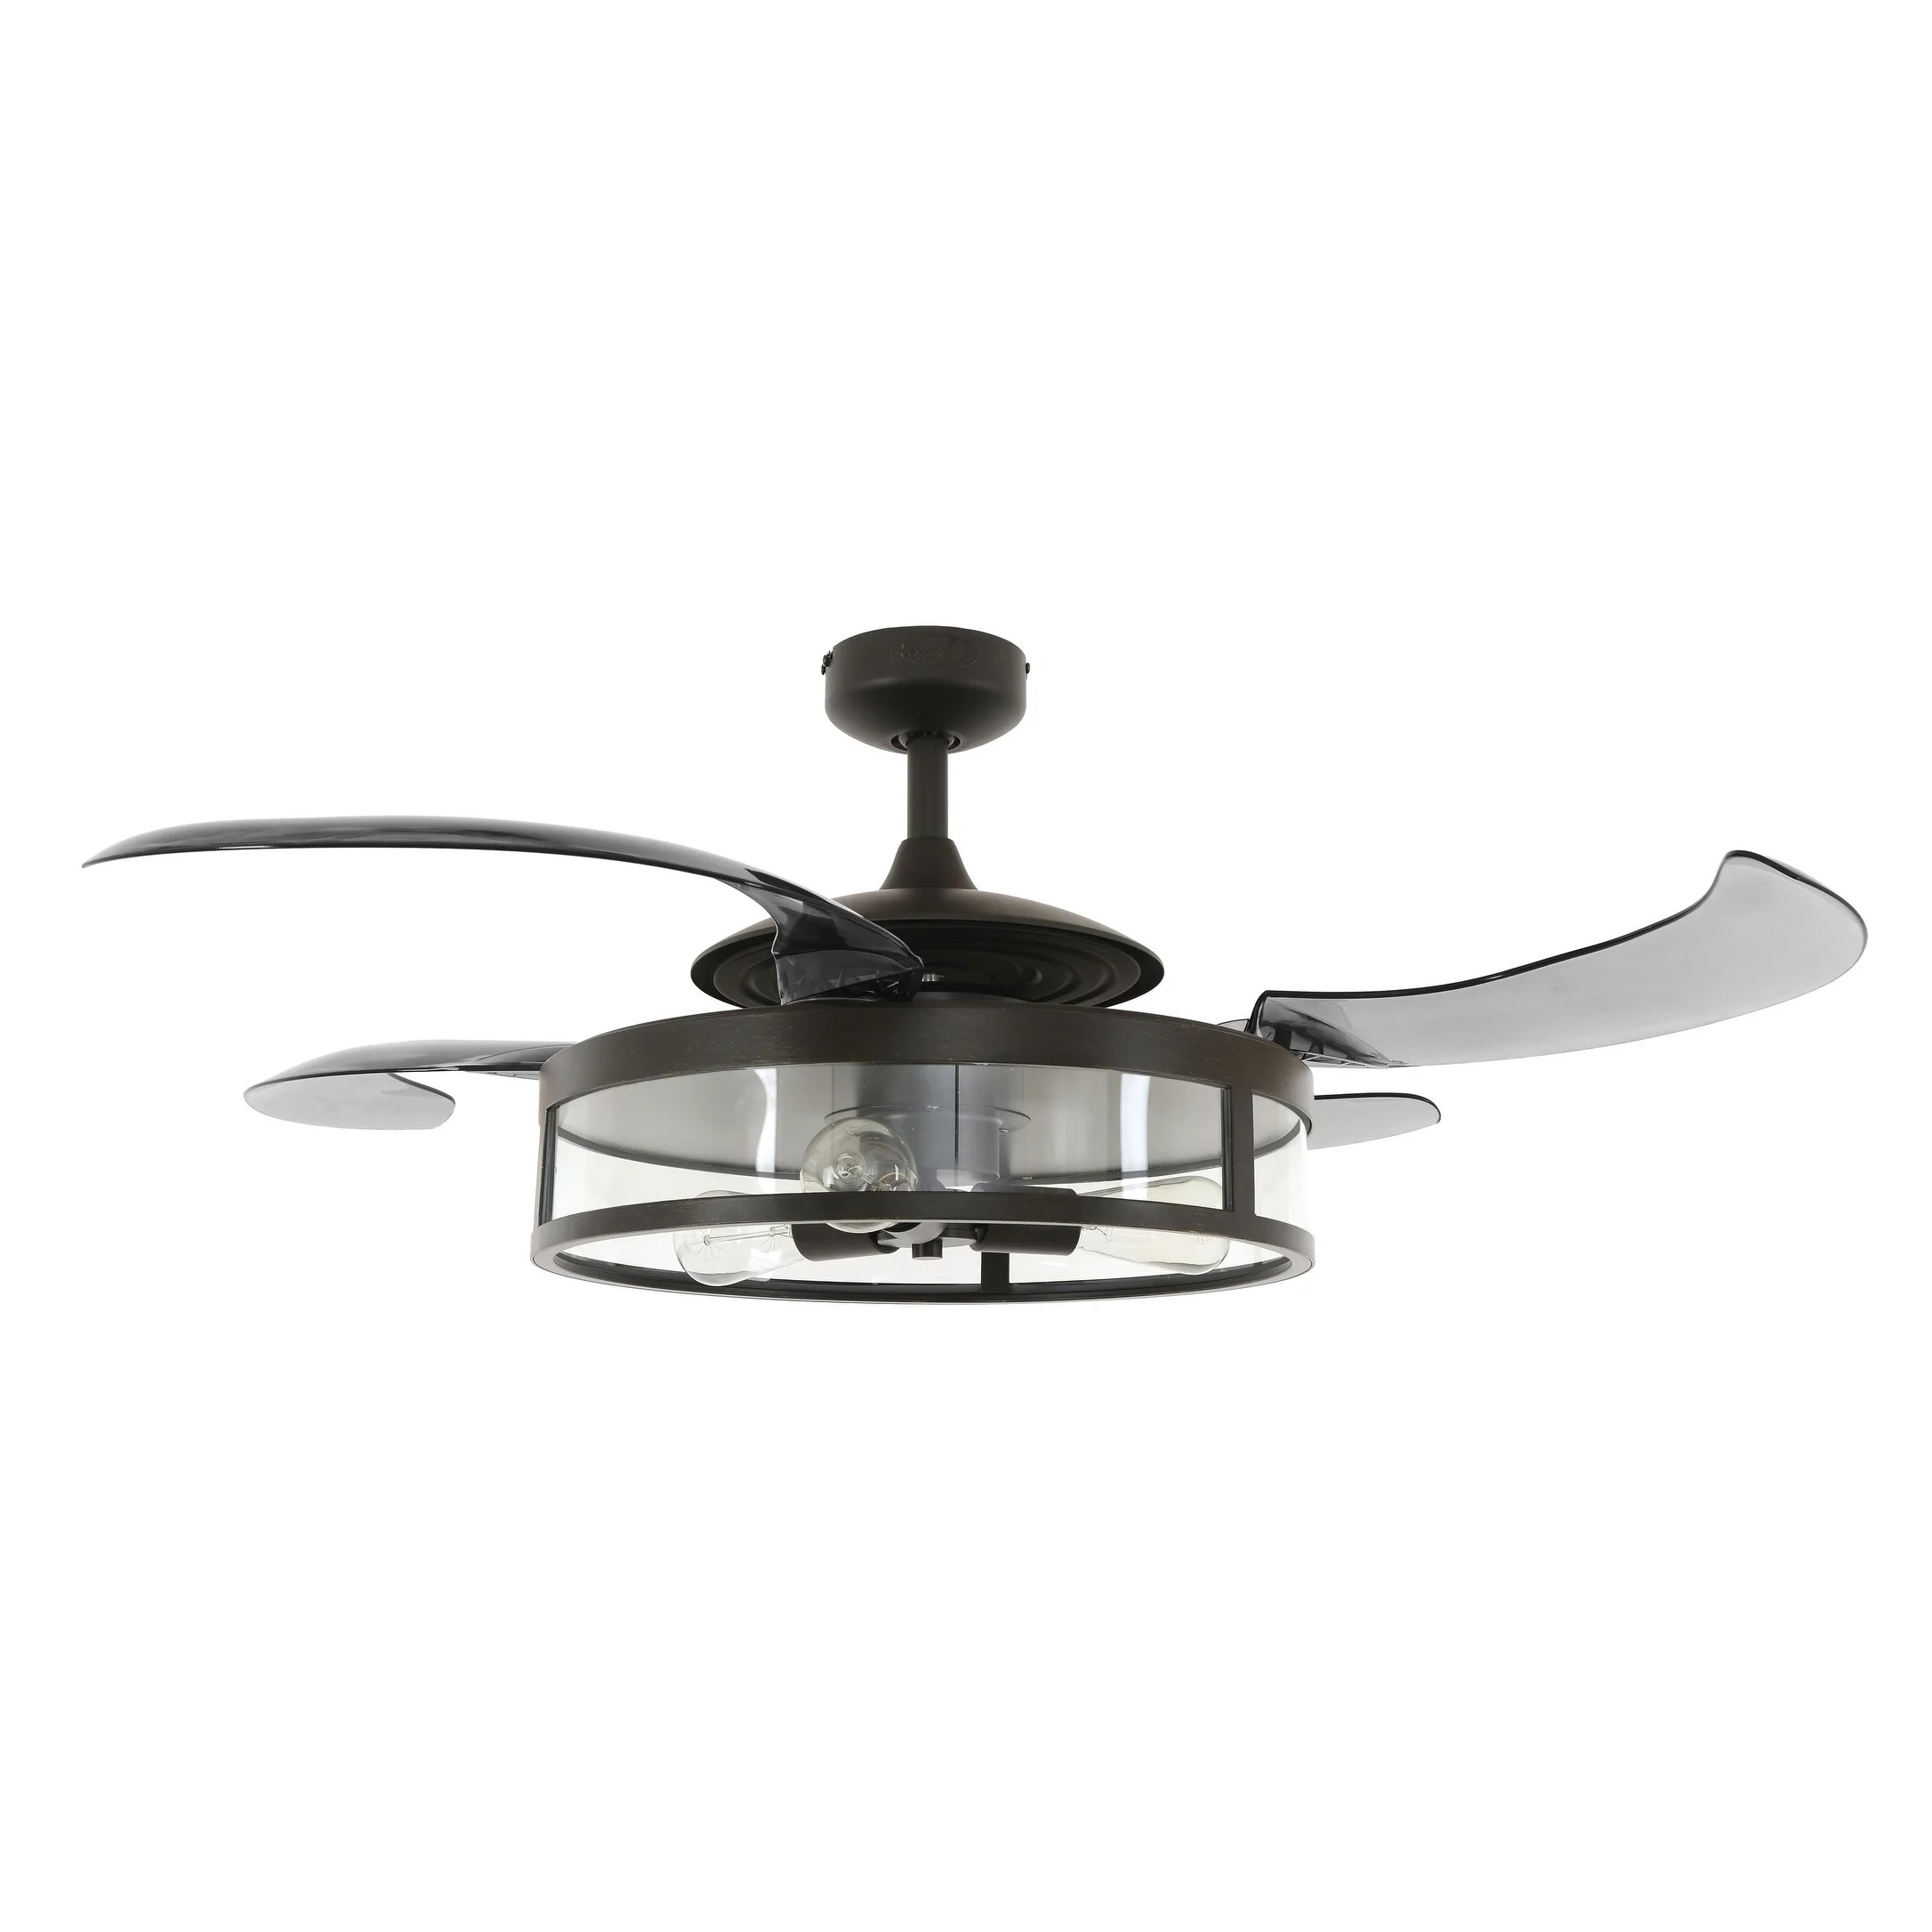 Shop Black Friday Deals On 48 In Antique Black Ceiling Fan With Remote Control Overstock 17995874